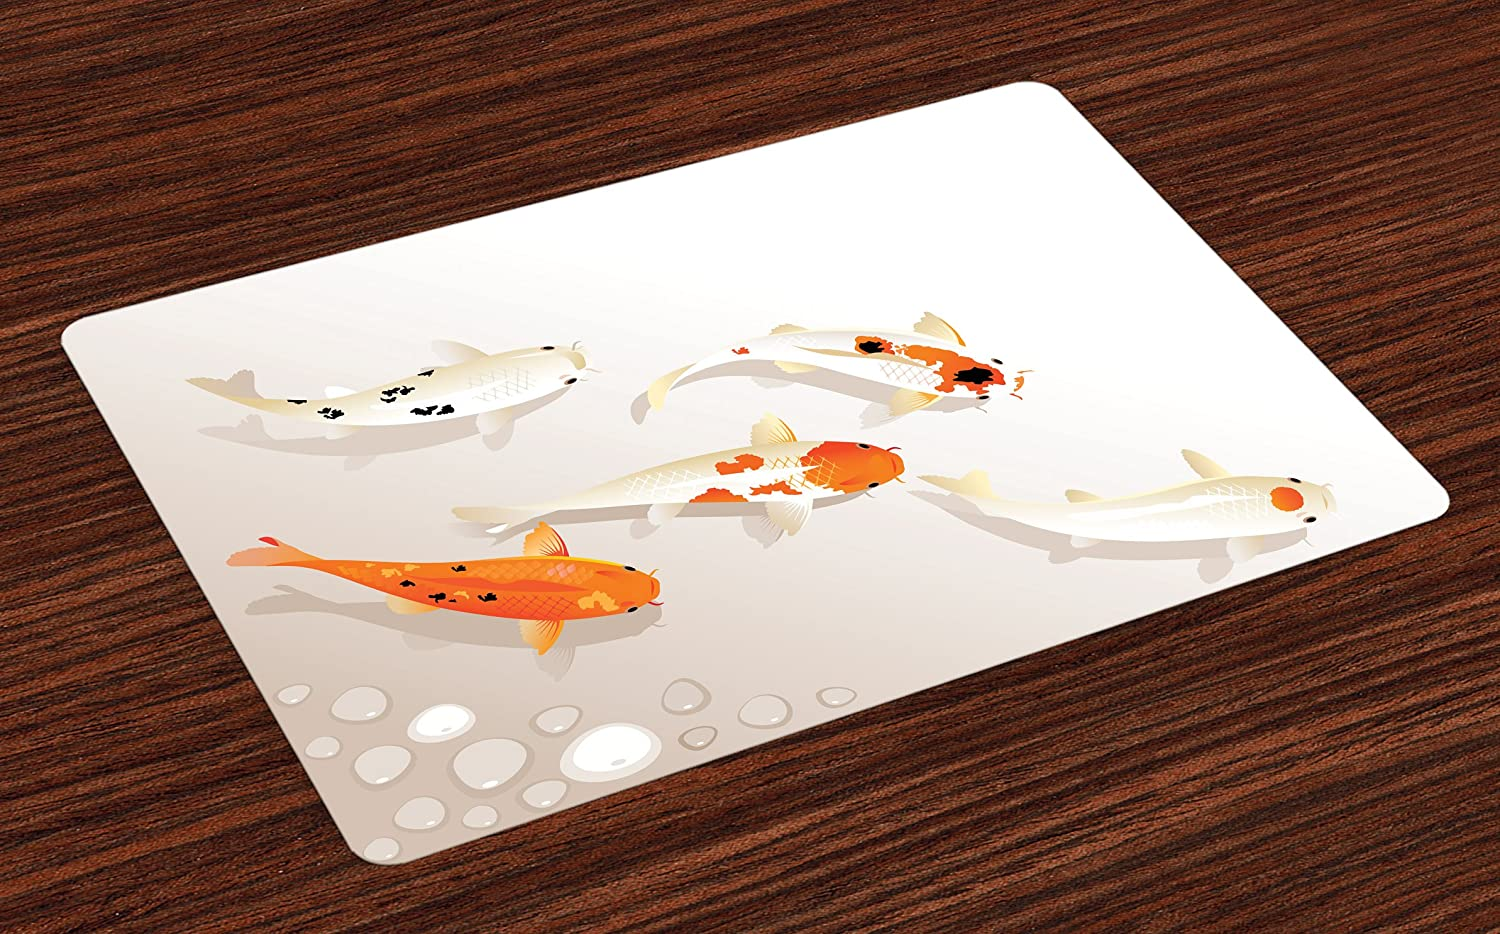 Ambesonne Koi Fish Place Mats Set of 4, Traditional Asian Sacred Spotty Koi Figures Carps Oriental Sign of Love Zen, Washable Fabric Placemats for Dining Room Kitchen Table Decor, Orange Beige